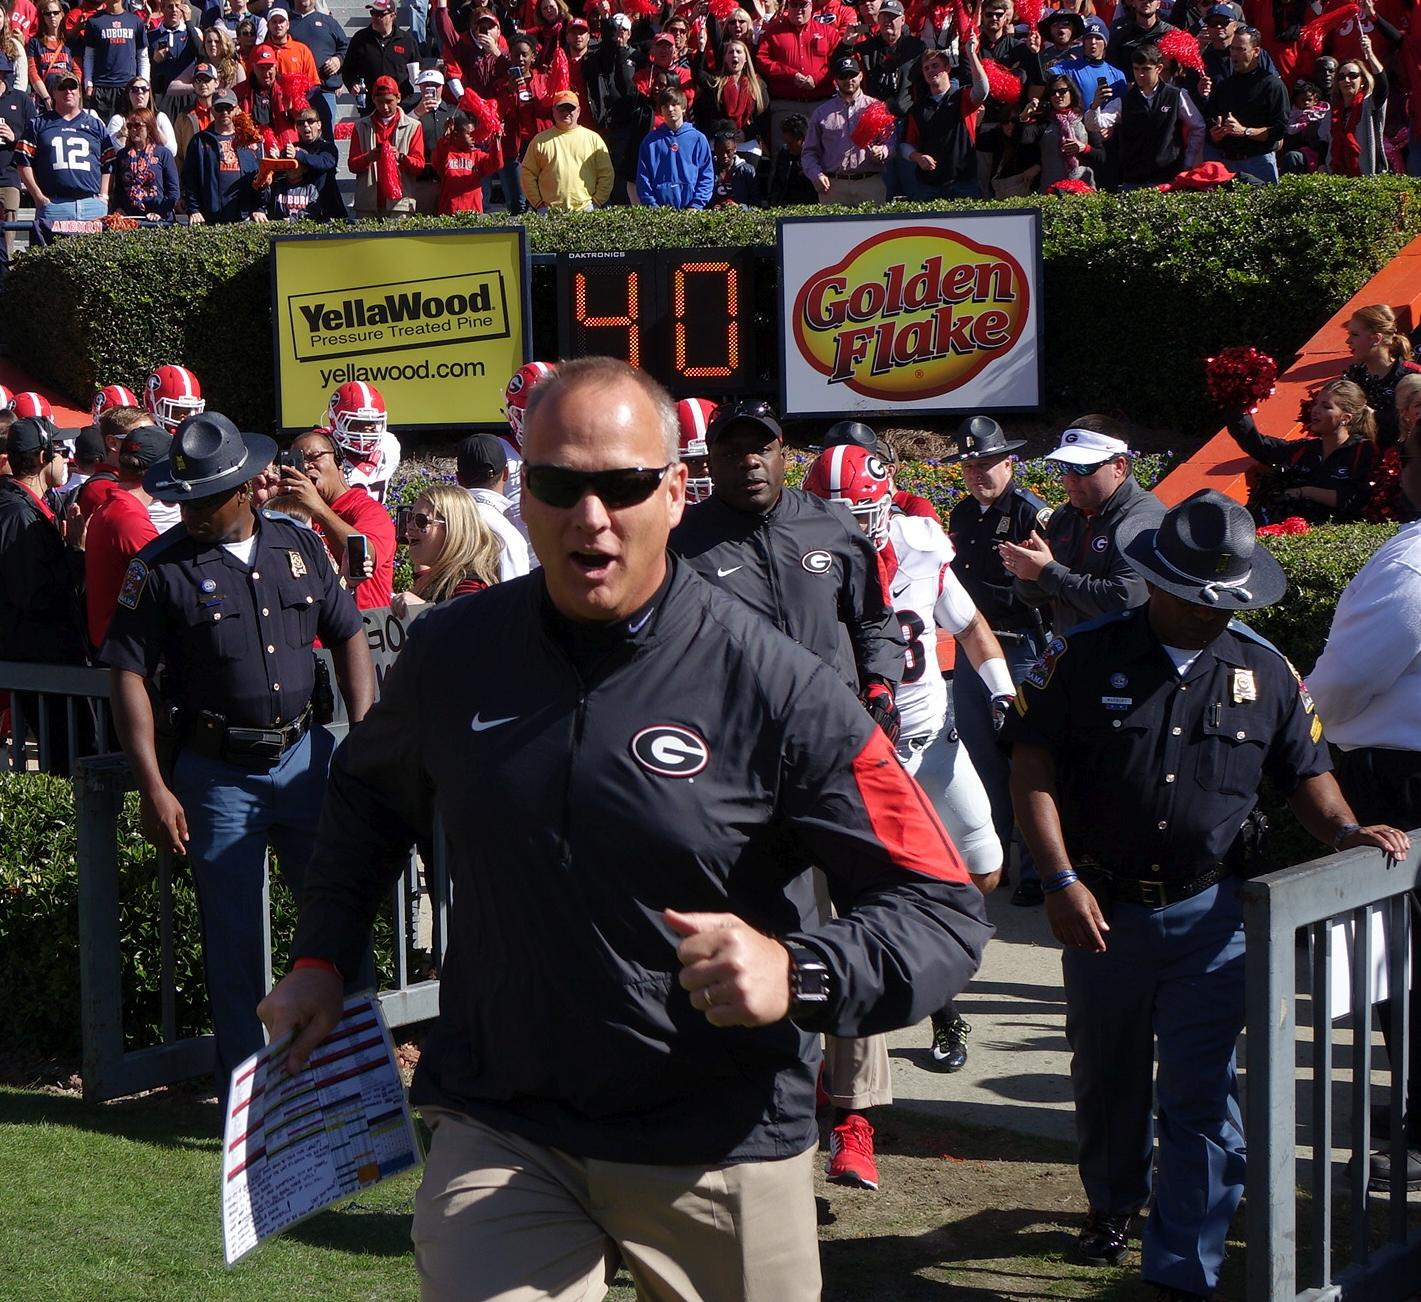 Coach Mark Richt leads Georgia team out of the tunnel UGA vs. Auburn 14-Nov-2015 (Photo by Bulldawg Illustrated's Greg Poole)